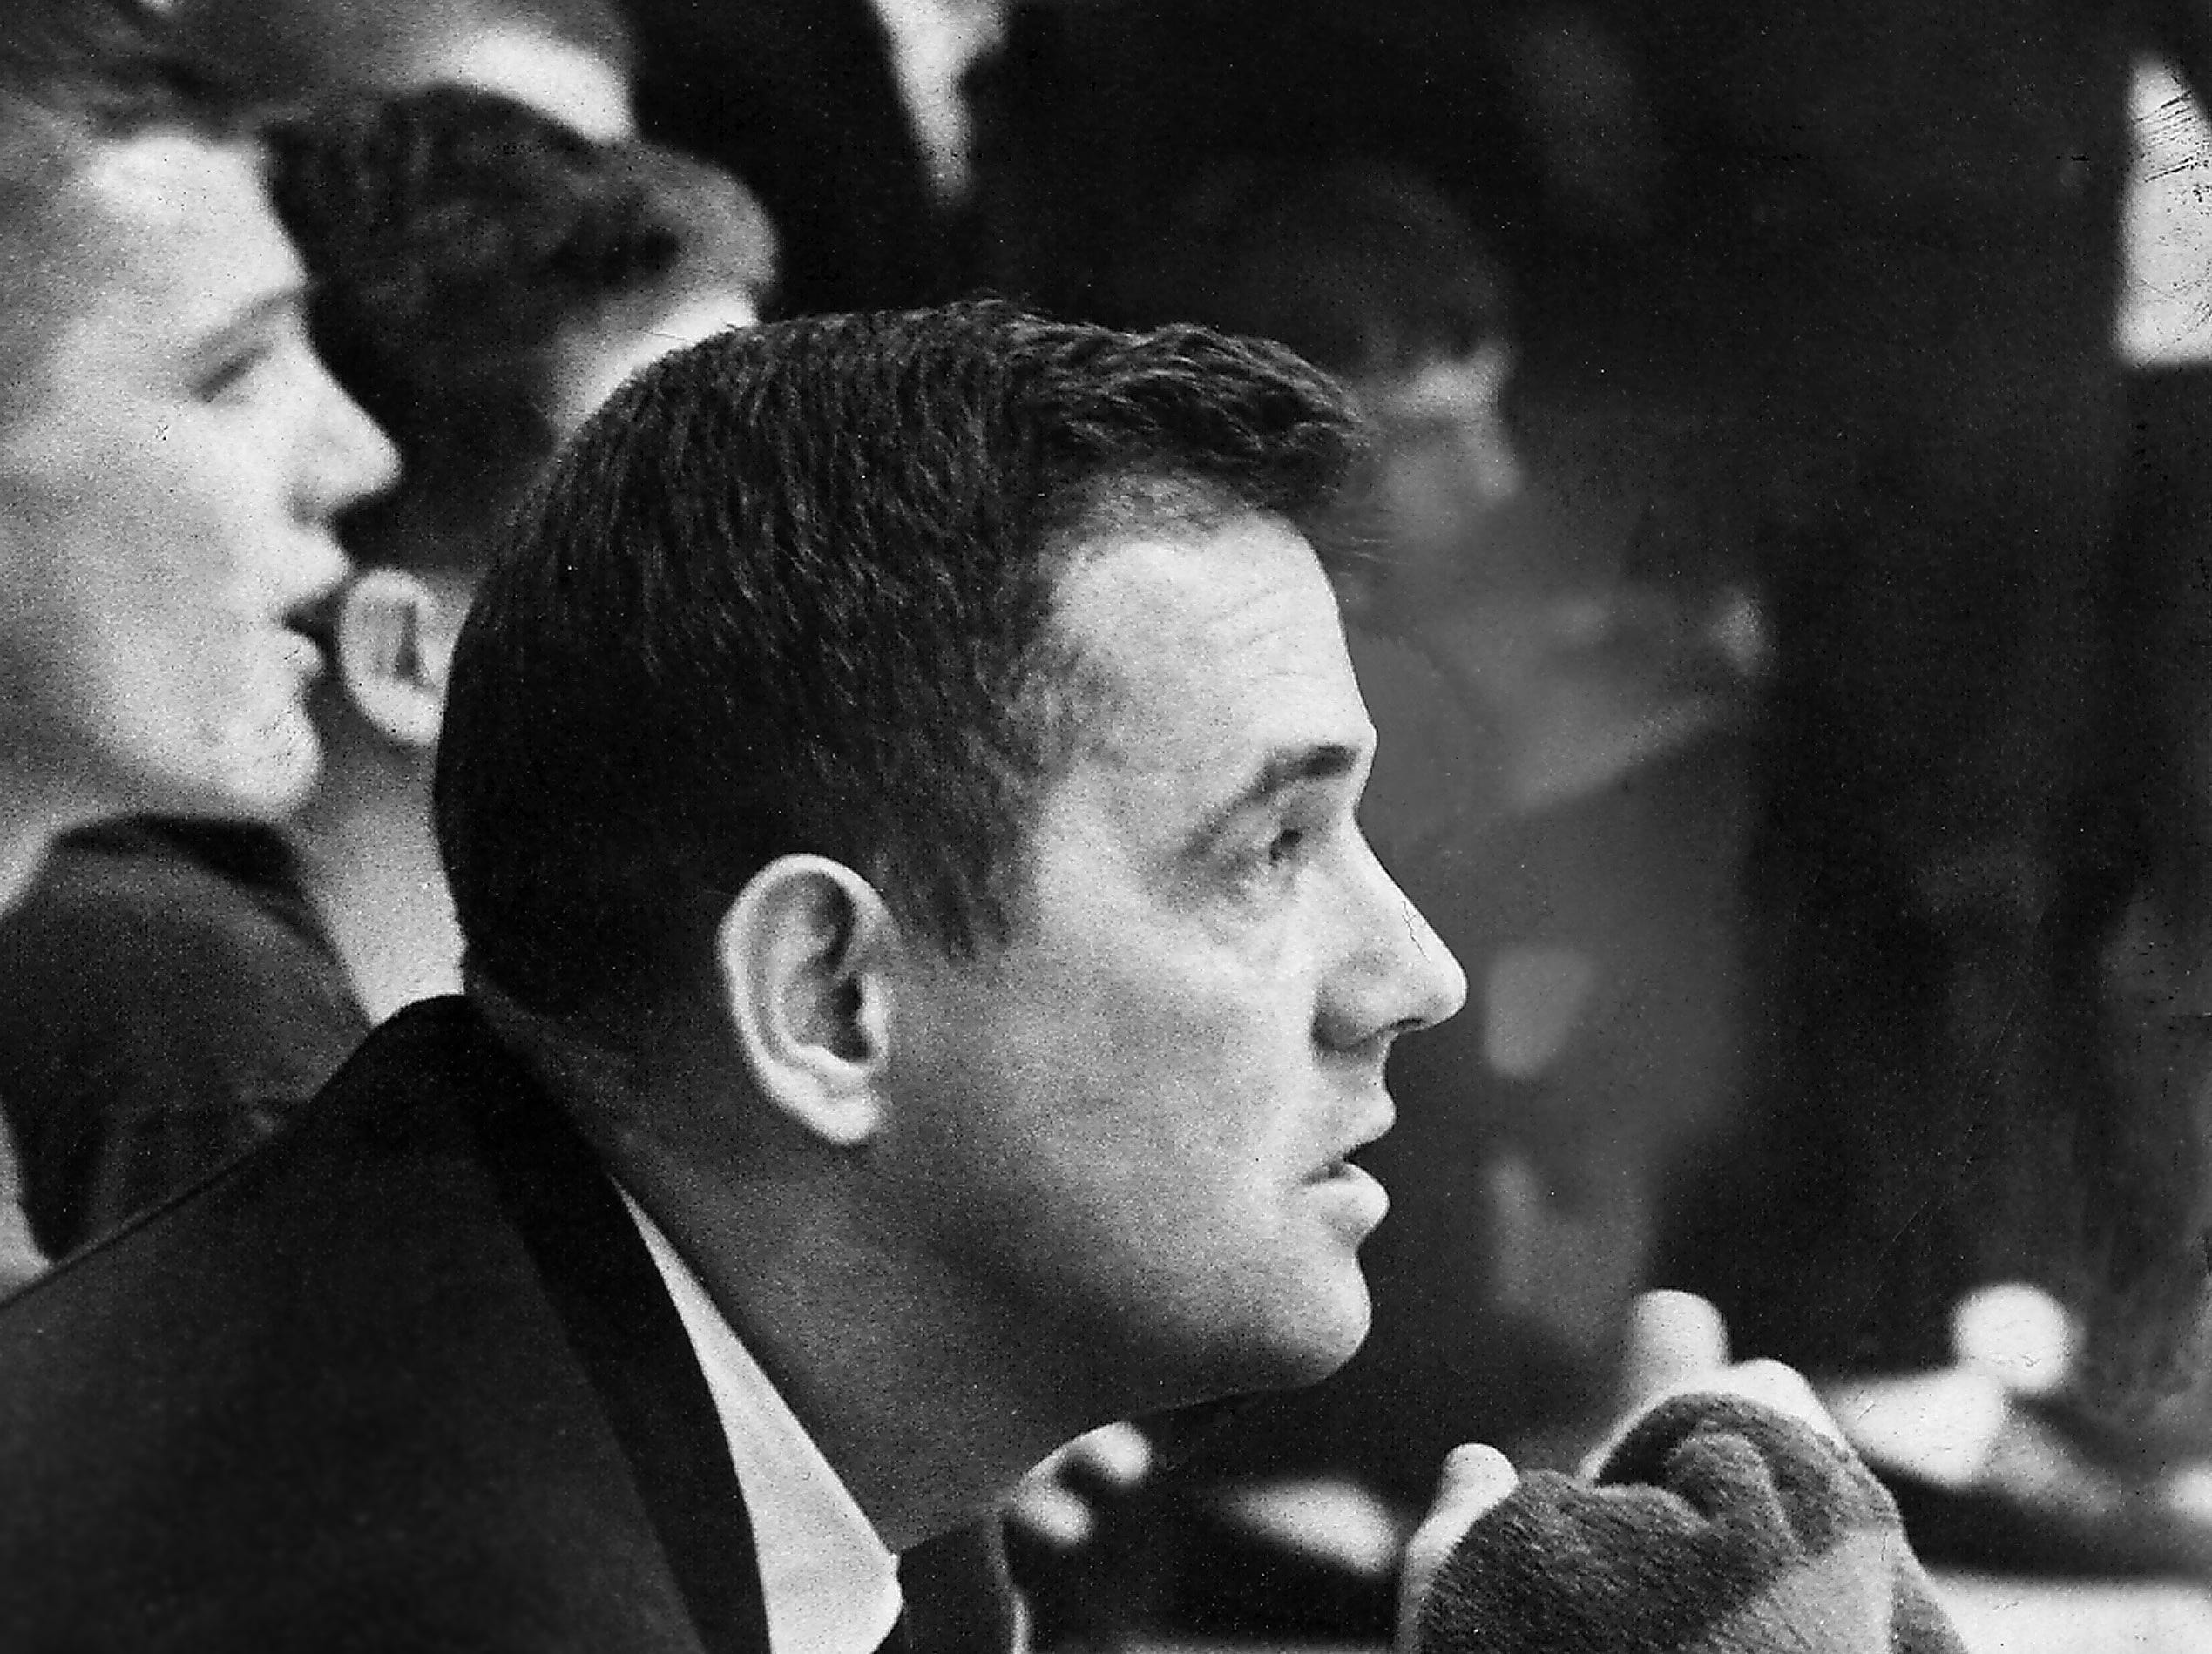 Kingsbury coach Bill Todd was a picture of concentration on Jan. 25, 1963, as he saw an 11-point lead dwindle to four as the final buzzer sounded, hanging on for a 64-60 Prep League basketball victory over Frayser in the battle of division leaders that marked the completion of the inter-divisional round. Mike Butler scored 25 points for the Falcons, who won their 13th straight game to remain the only undefeated team in the league and atop the Eastern Division. Frayser remained ahead in the Western Division.